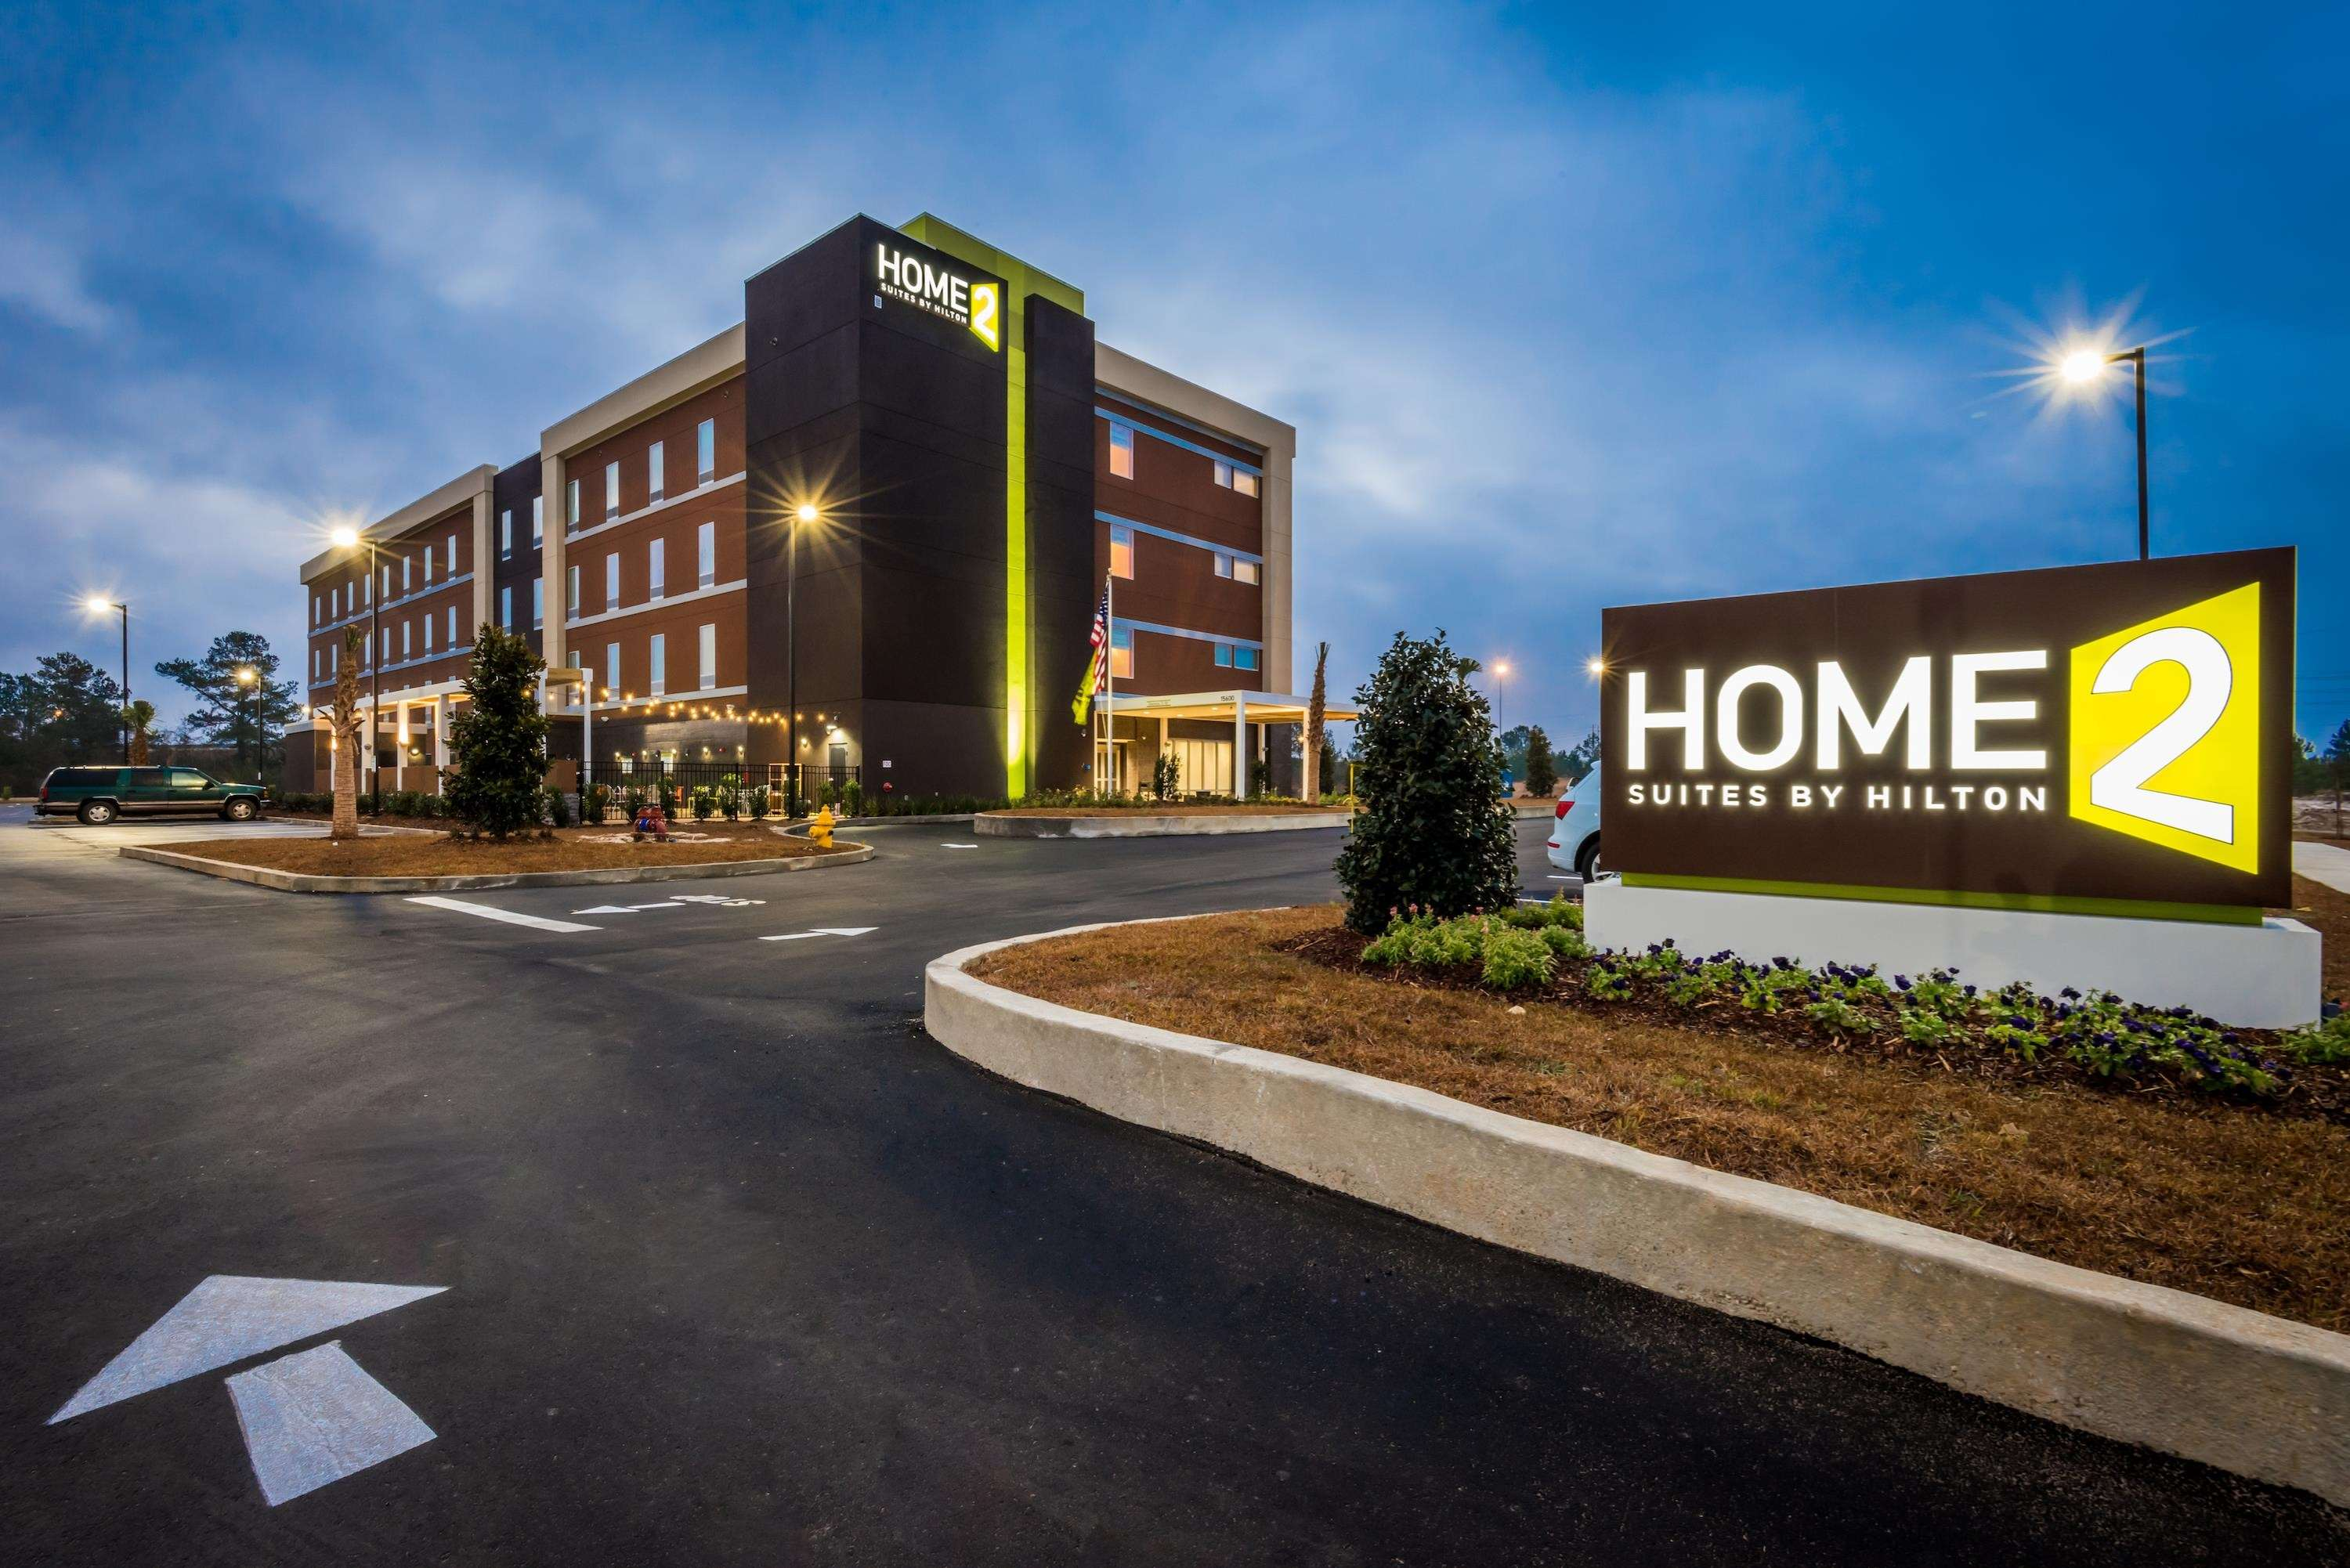 Home2 Suites by Hilton Gulfport I-10 image 1